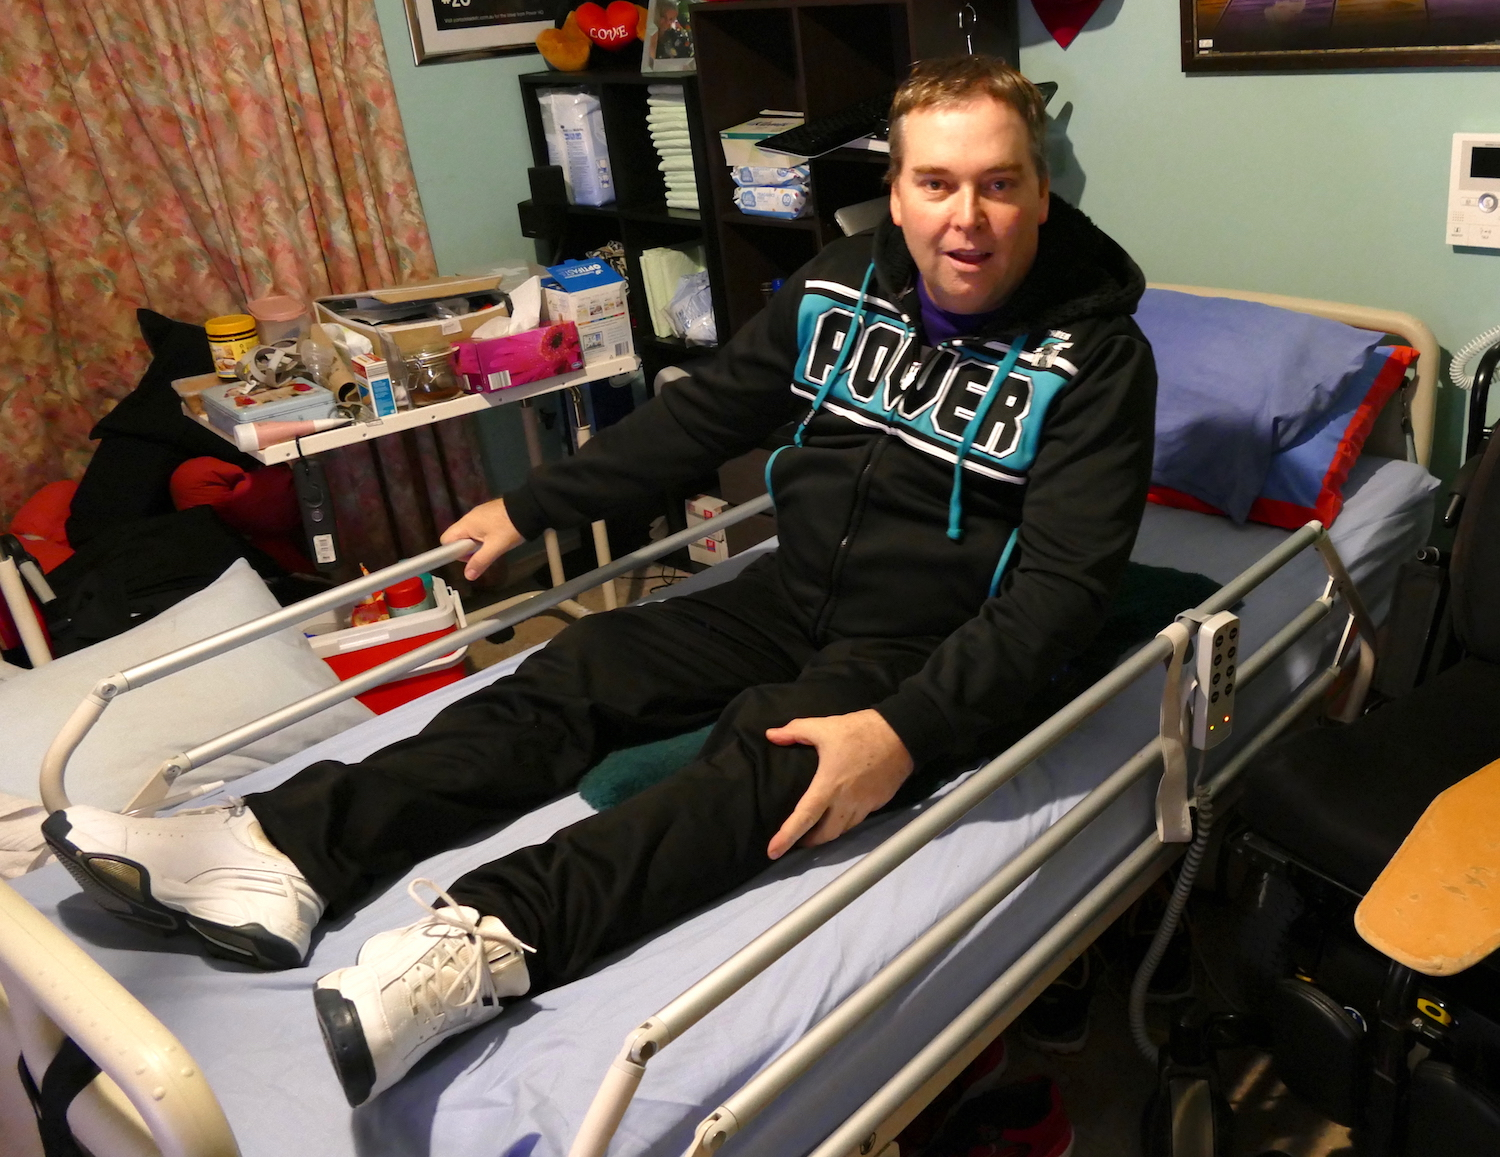 having safely arrived in bed, John pulls up the safety rail and smiles to the camera - sci sleeping tips